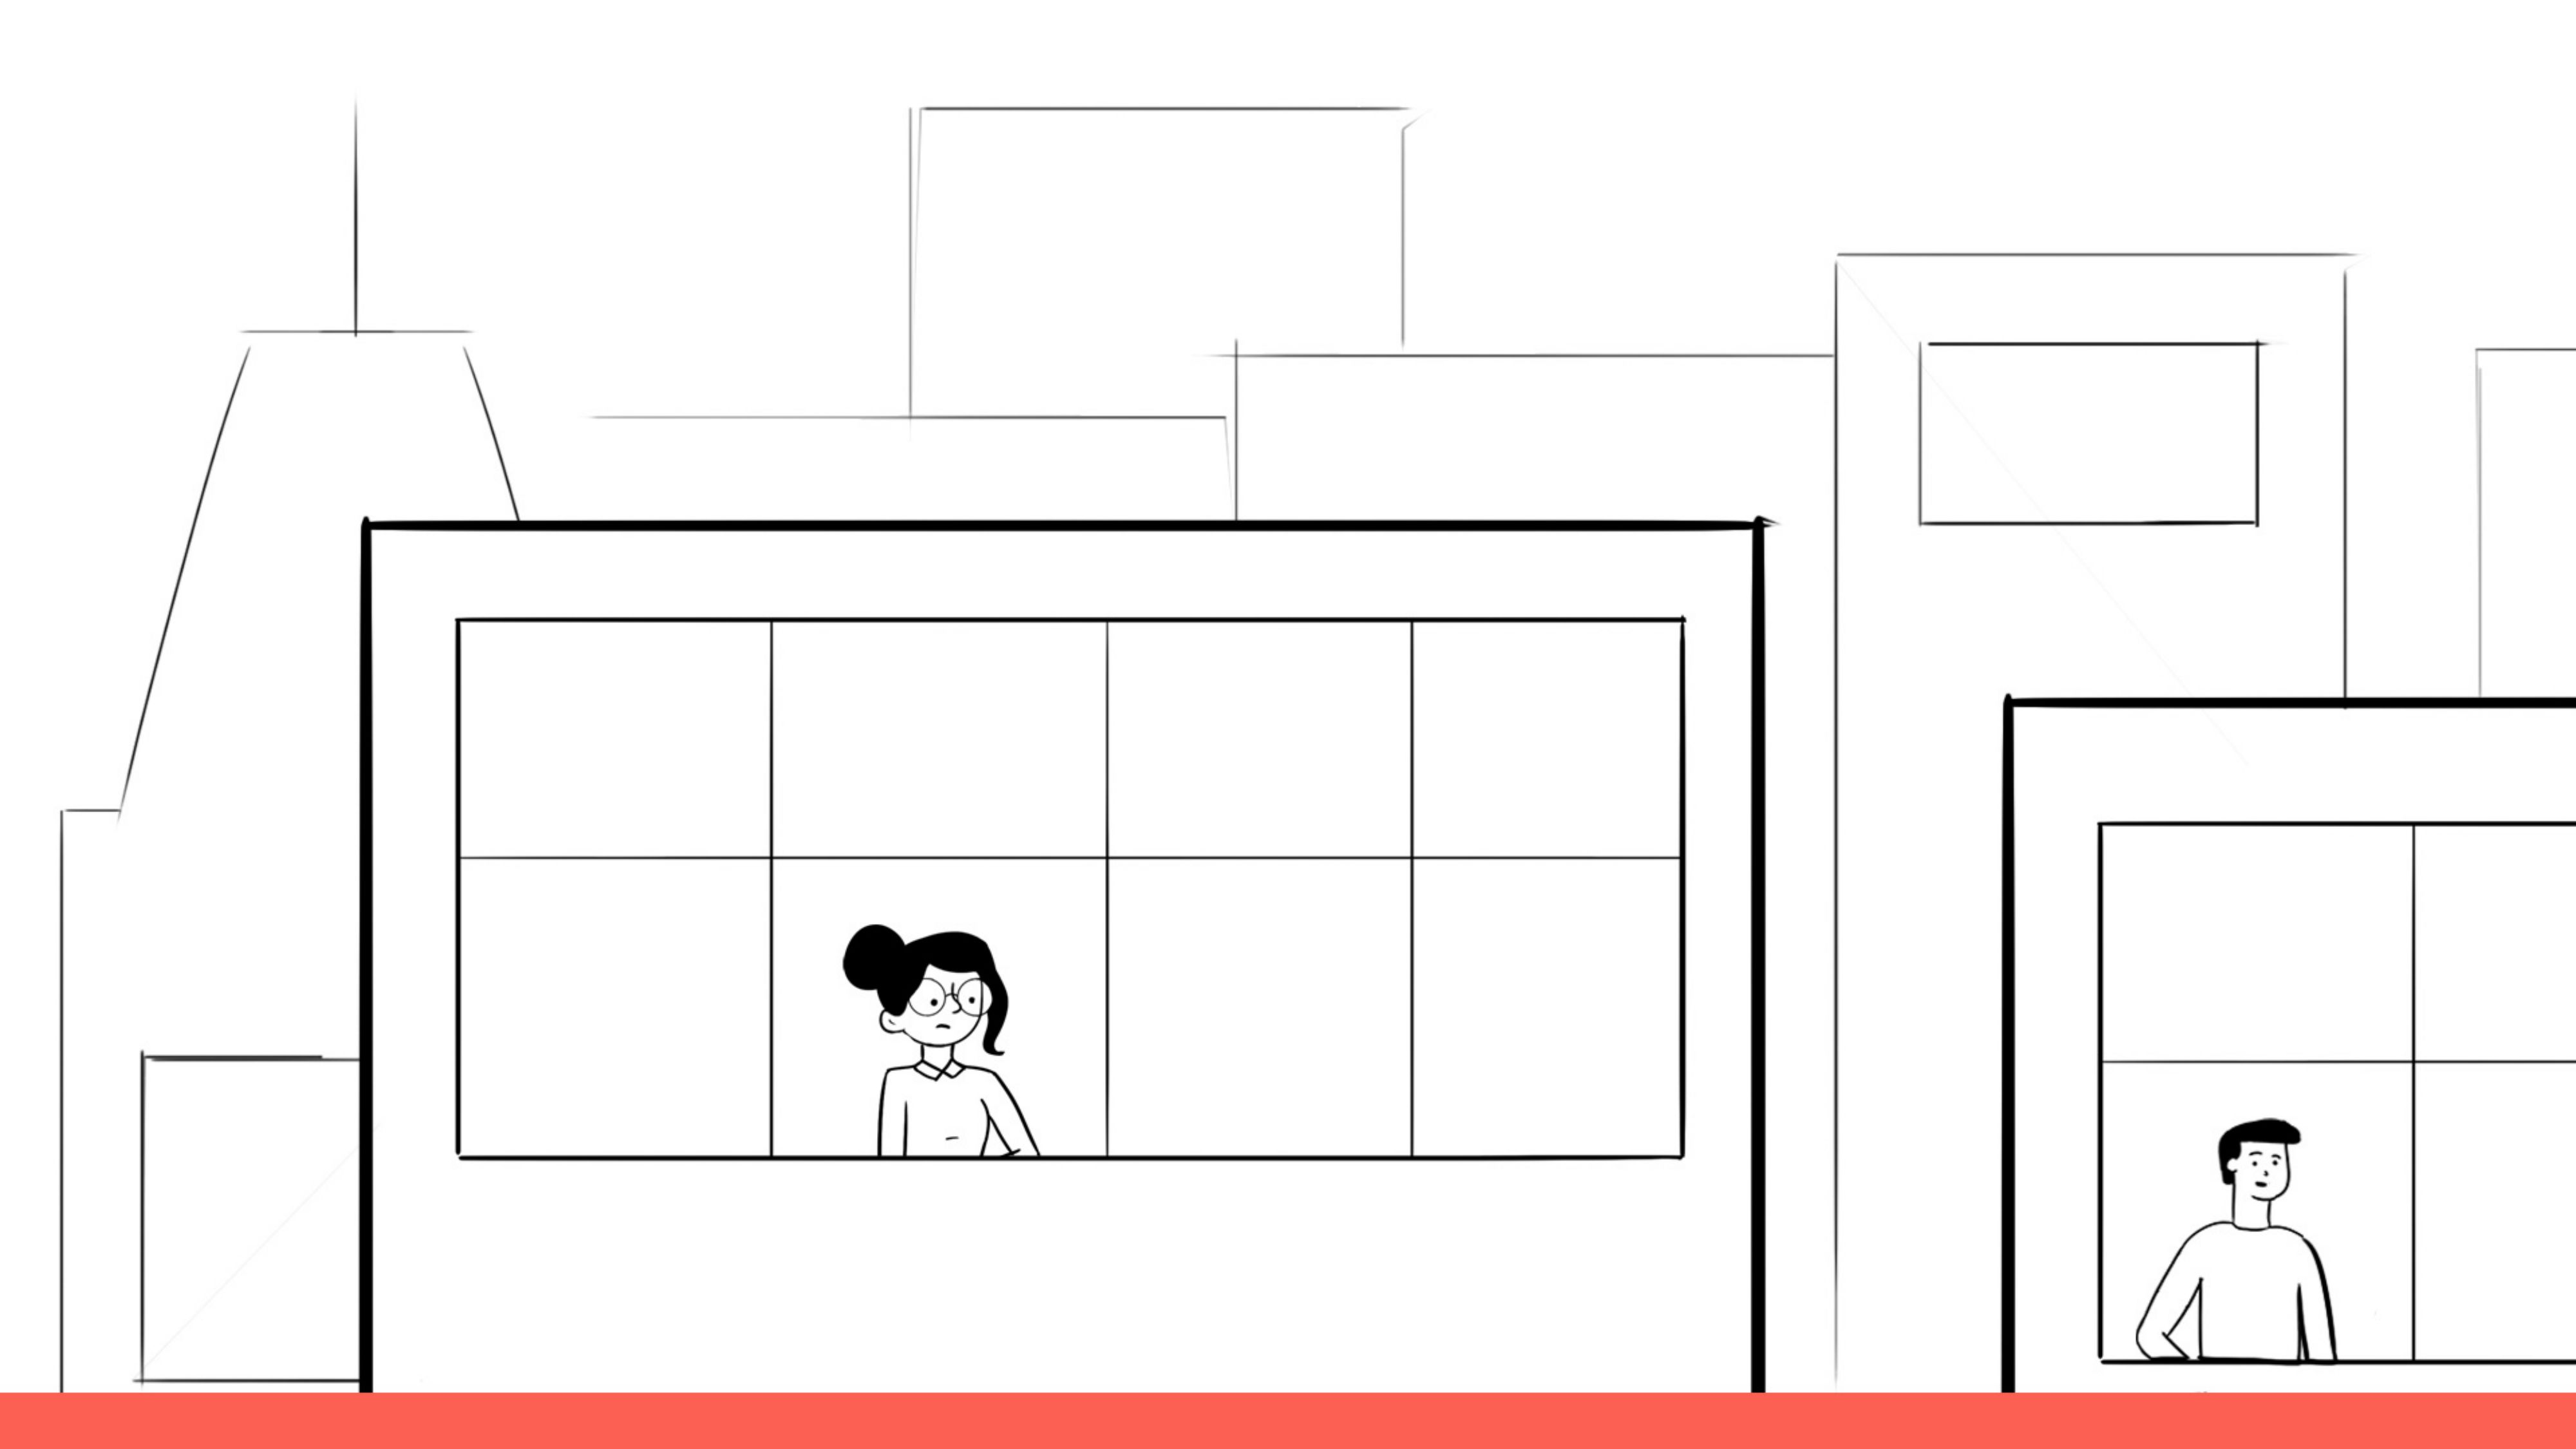 storyboard first page